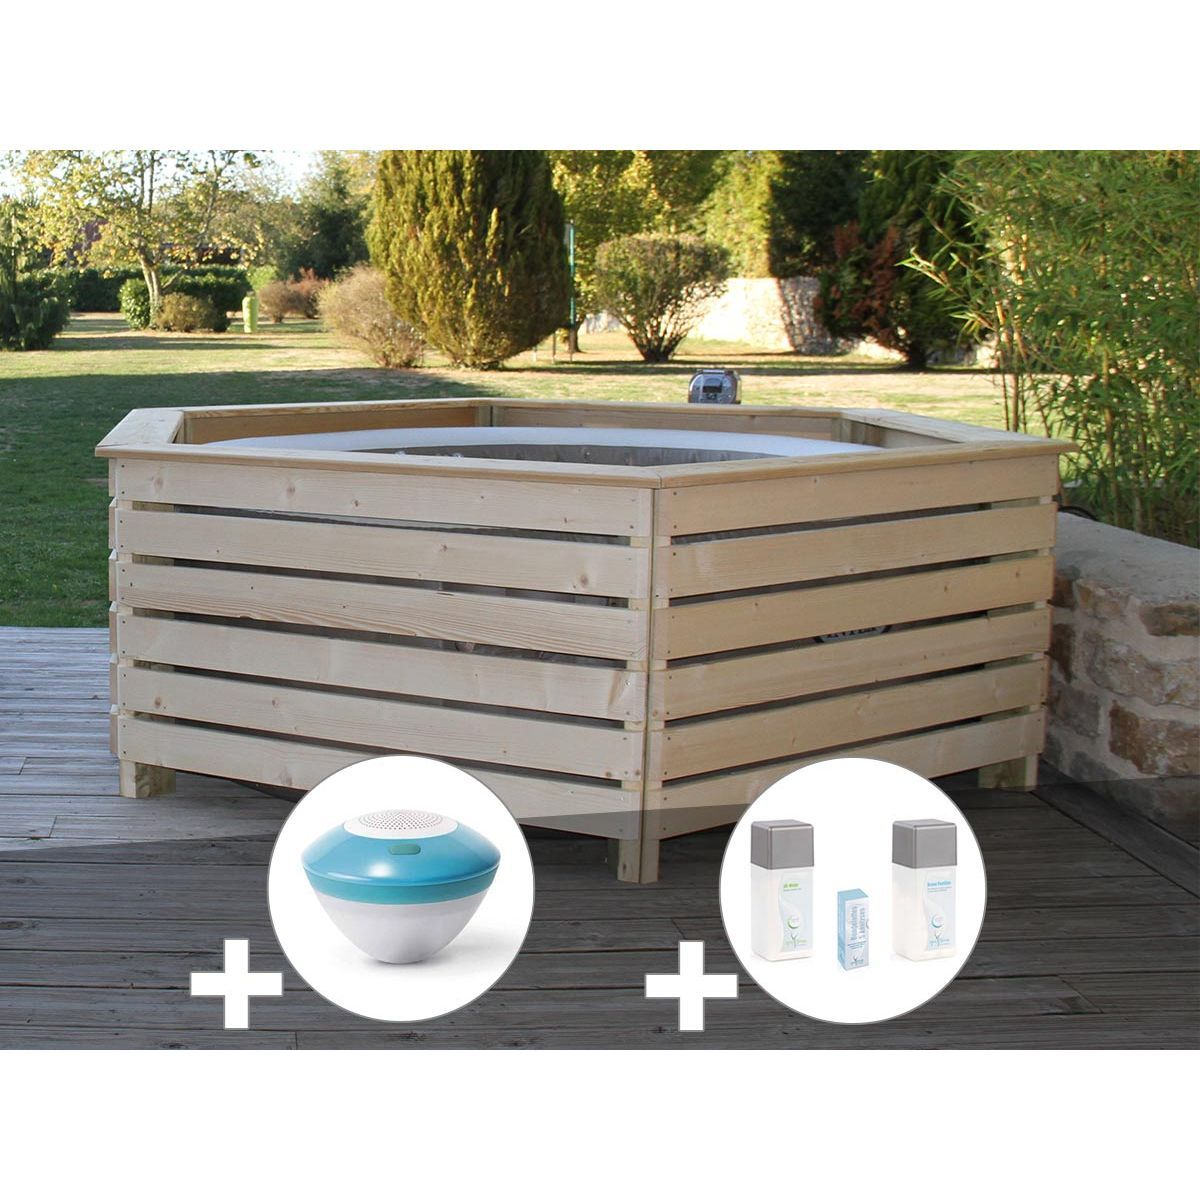 Pack Spa Gonflable Intex Purespa Rond Bulles 4 Places Habillage